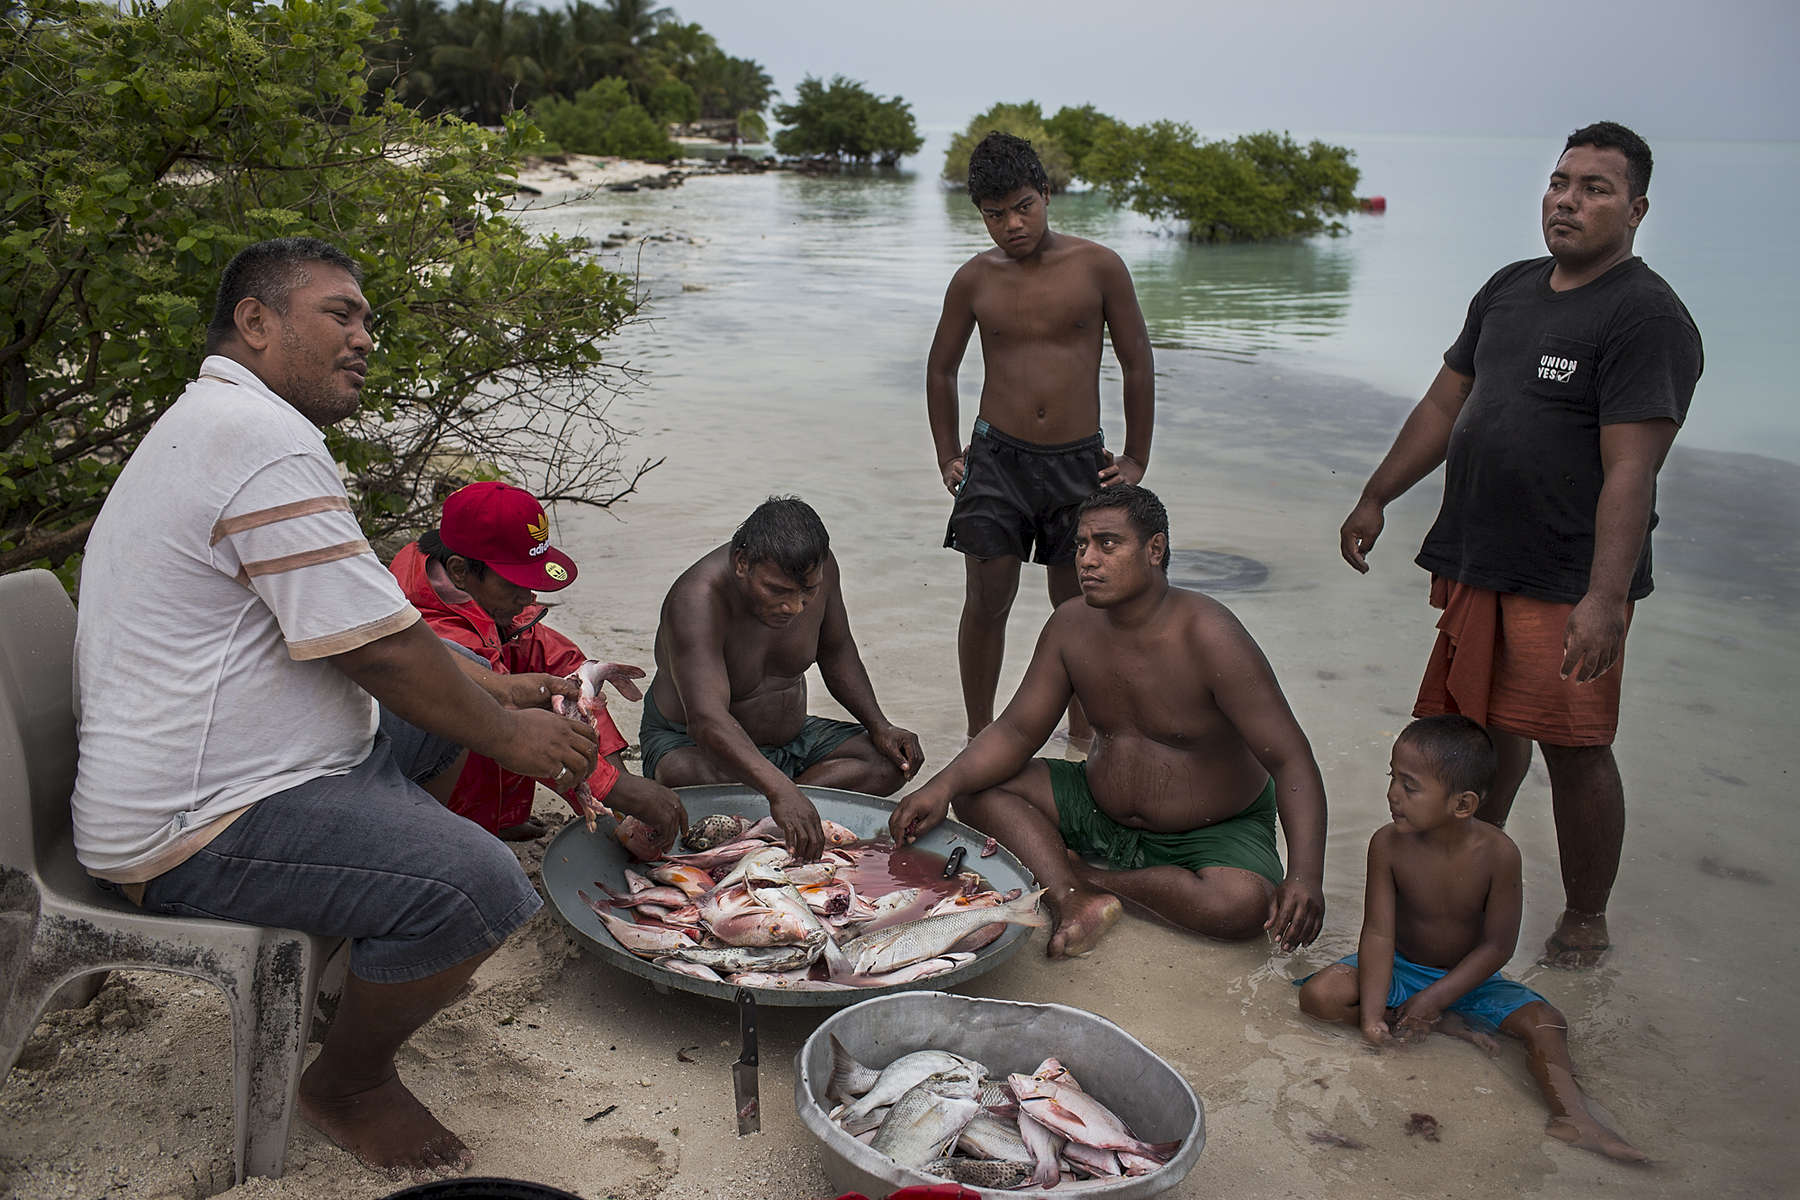 Moaniba Ratitaake (left), 40 years old has 7 children is a fisherman and supports his family by selling his catch. Moaniba lives in Eita village on South Tarawa island, Kiribati. Moaniba moved to Eita village to live on an area of land owned by his wives family once it was connected to water and electrcitiy. Initially he could drive all the way to the house, but for the last 4-5 years much of the land remains underwater during hightide. Moaniba plans to build more sea walls around the land that reaches the ocean but he concedes this is only a short term fix for what will inevitably be uninhabitable land.